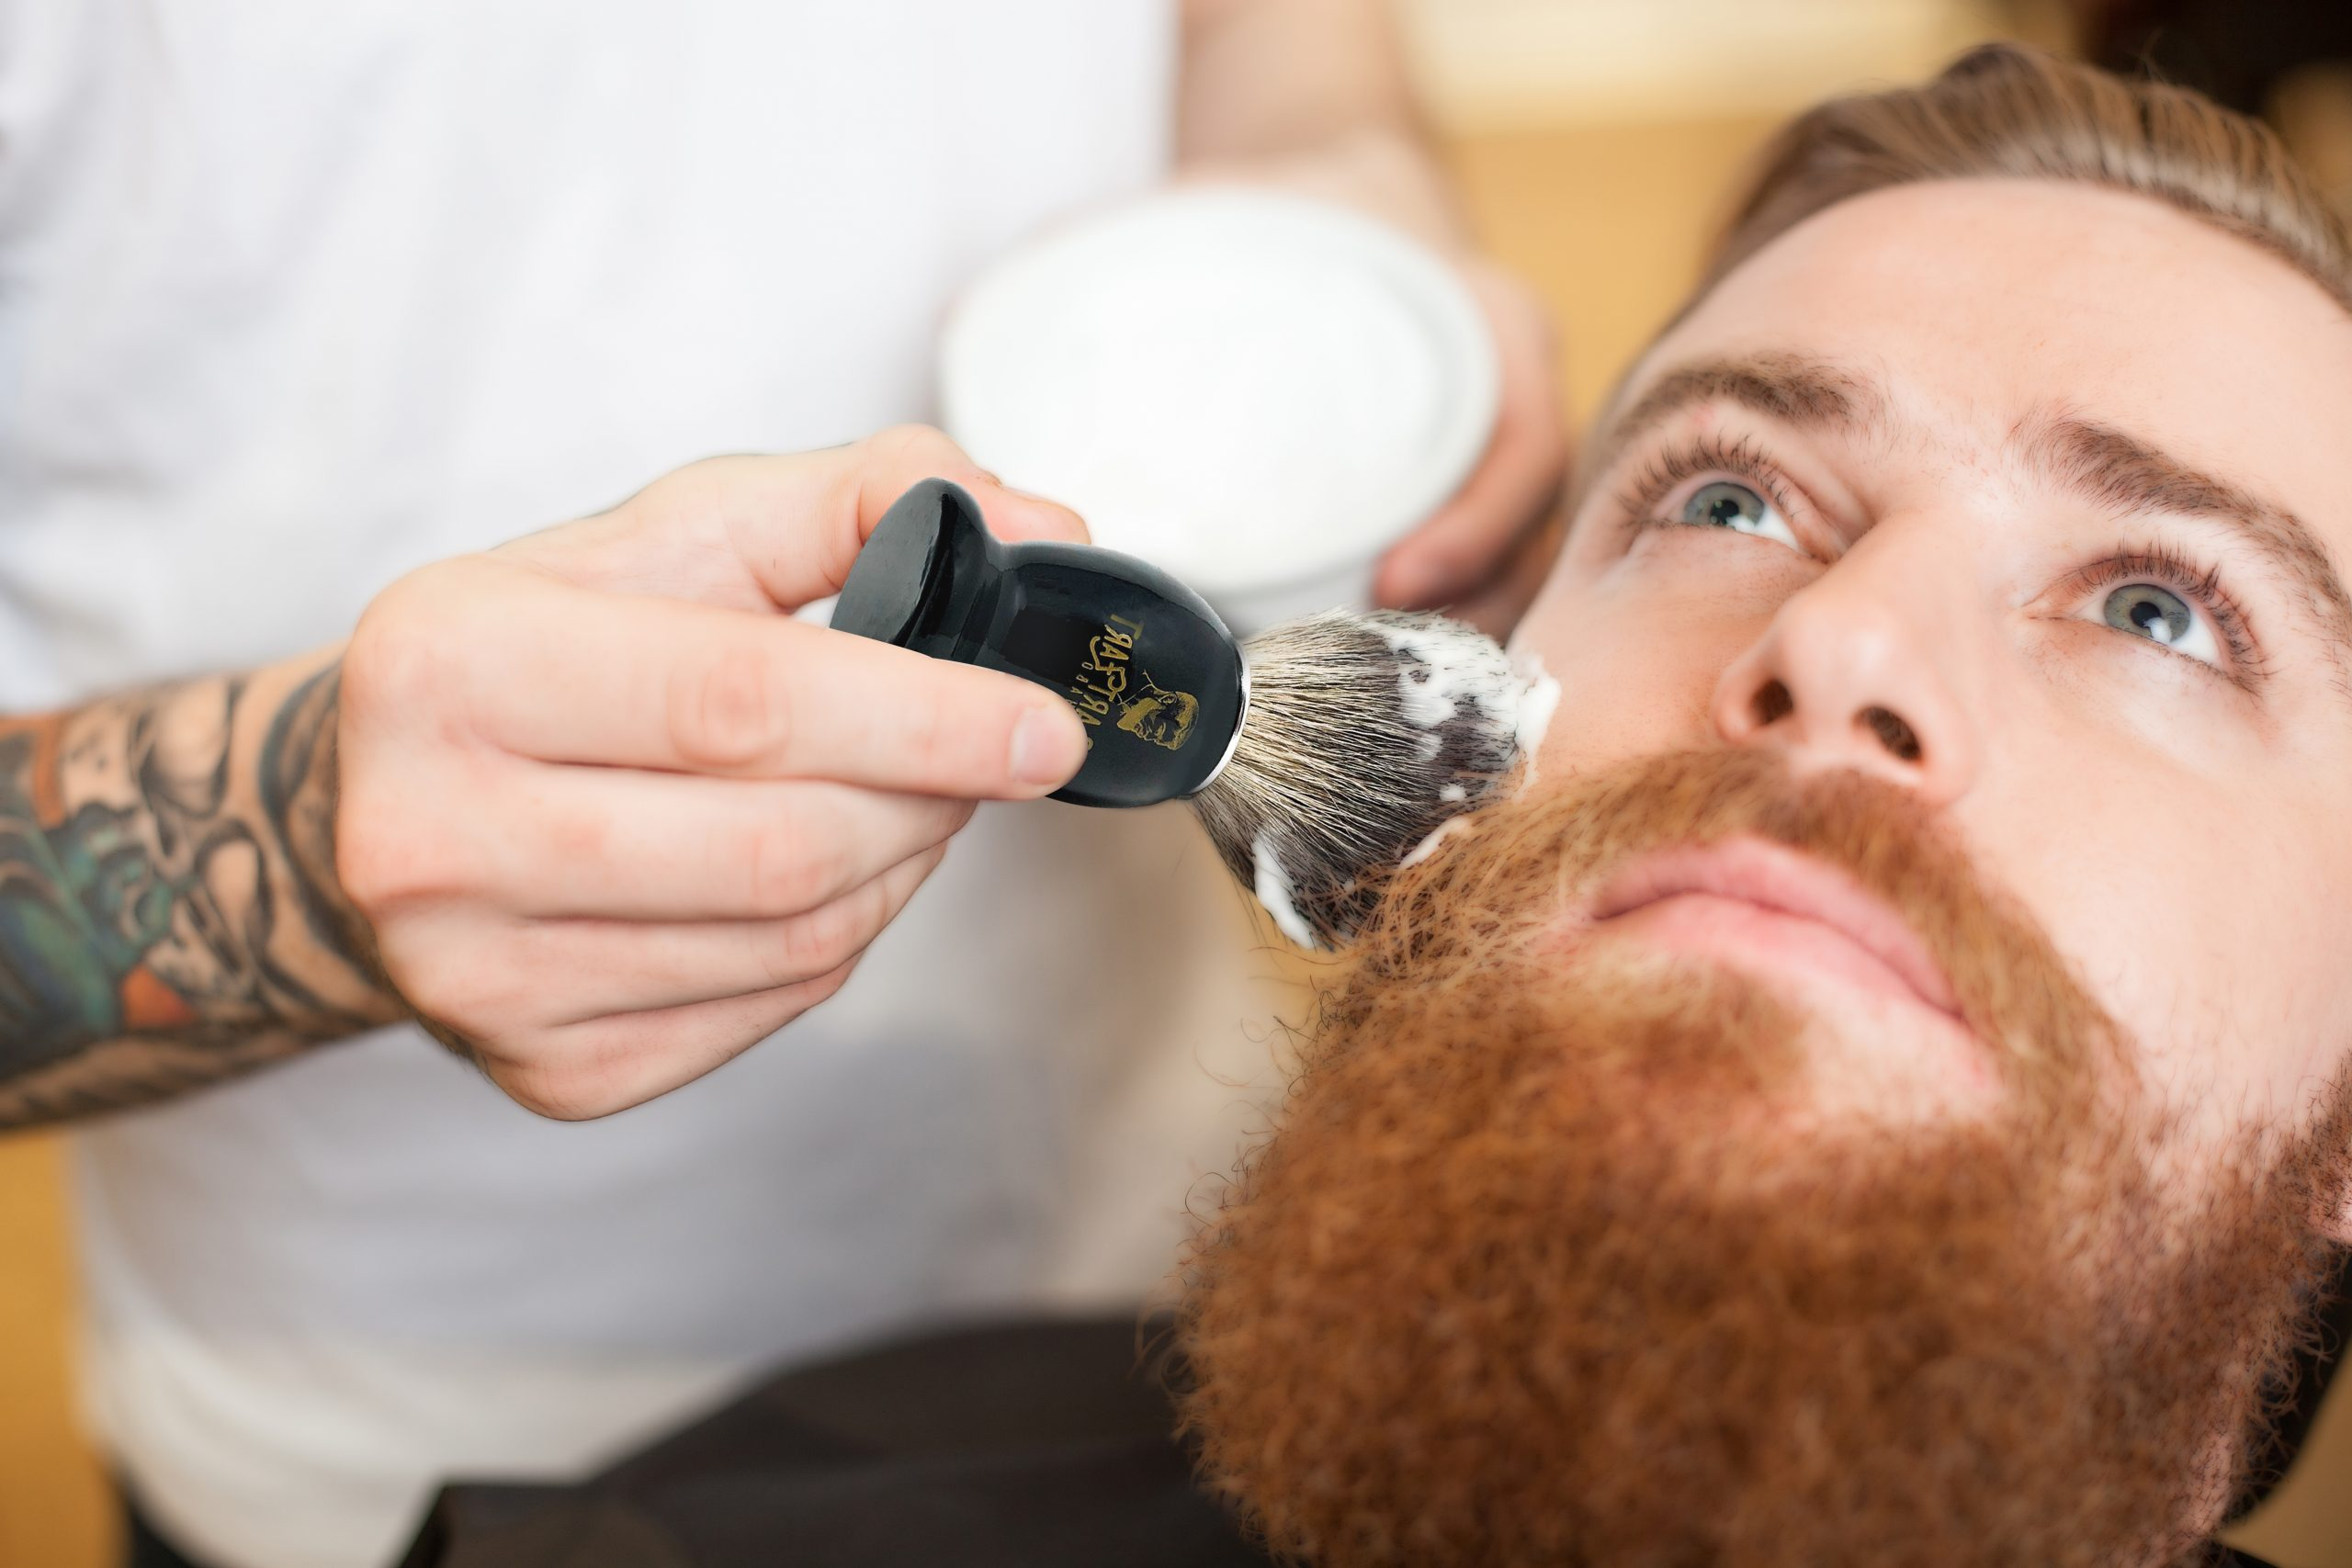 Close up of arms of professional barber preparing the beard of man for shaving. He is standing and applying shaving foam of human face. Young bearded man is looking up seriously